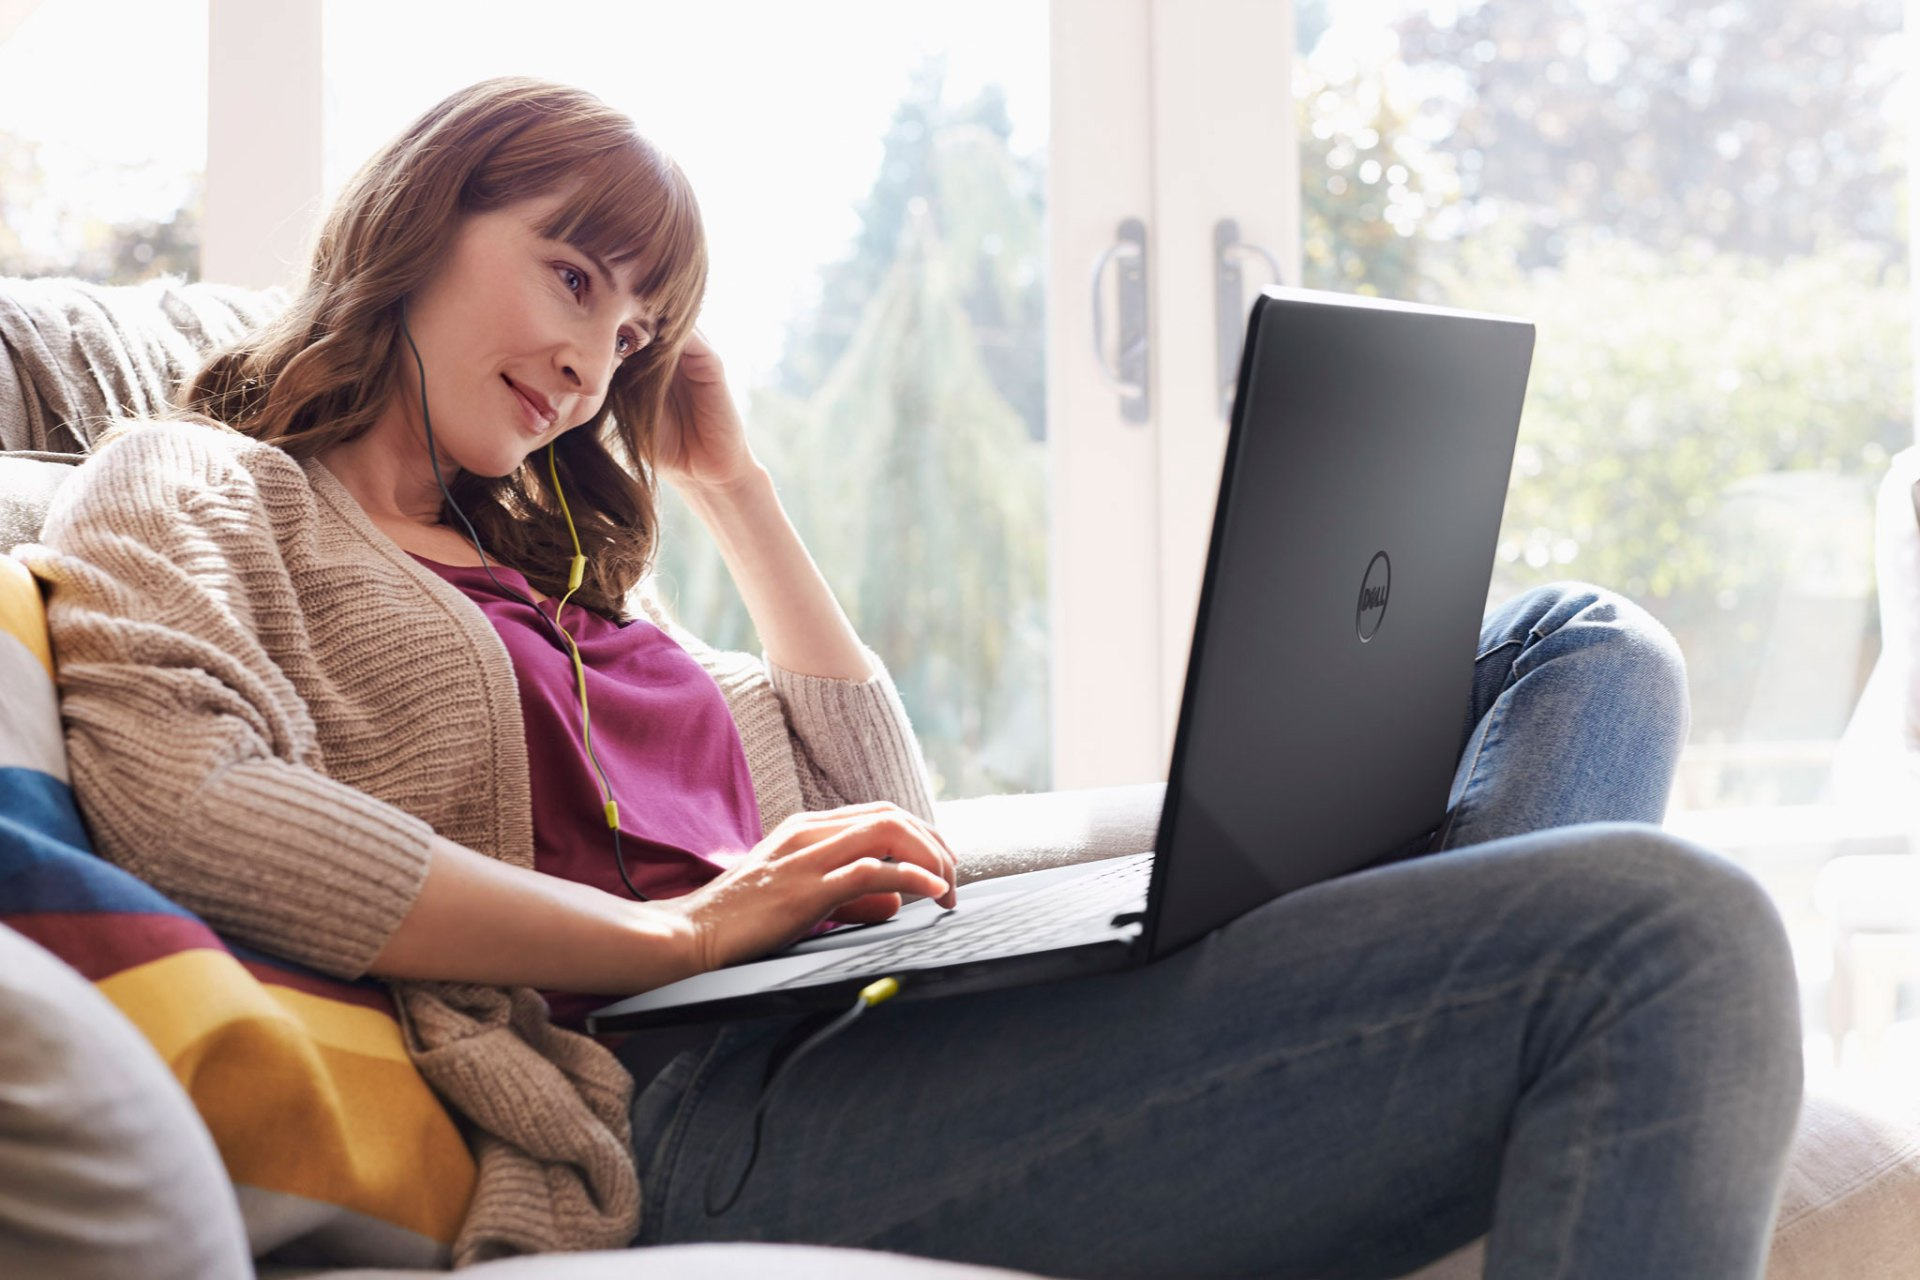 Woman Sitting on Couch Using Inspiron 14 3000 Series Notebook